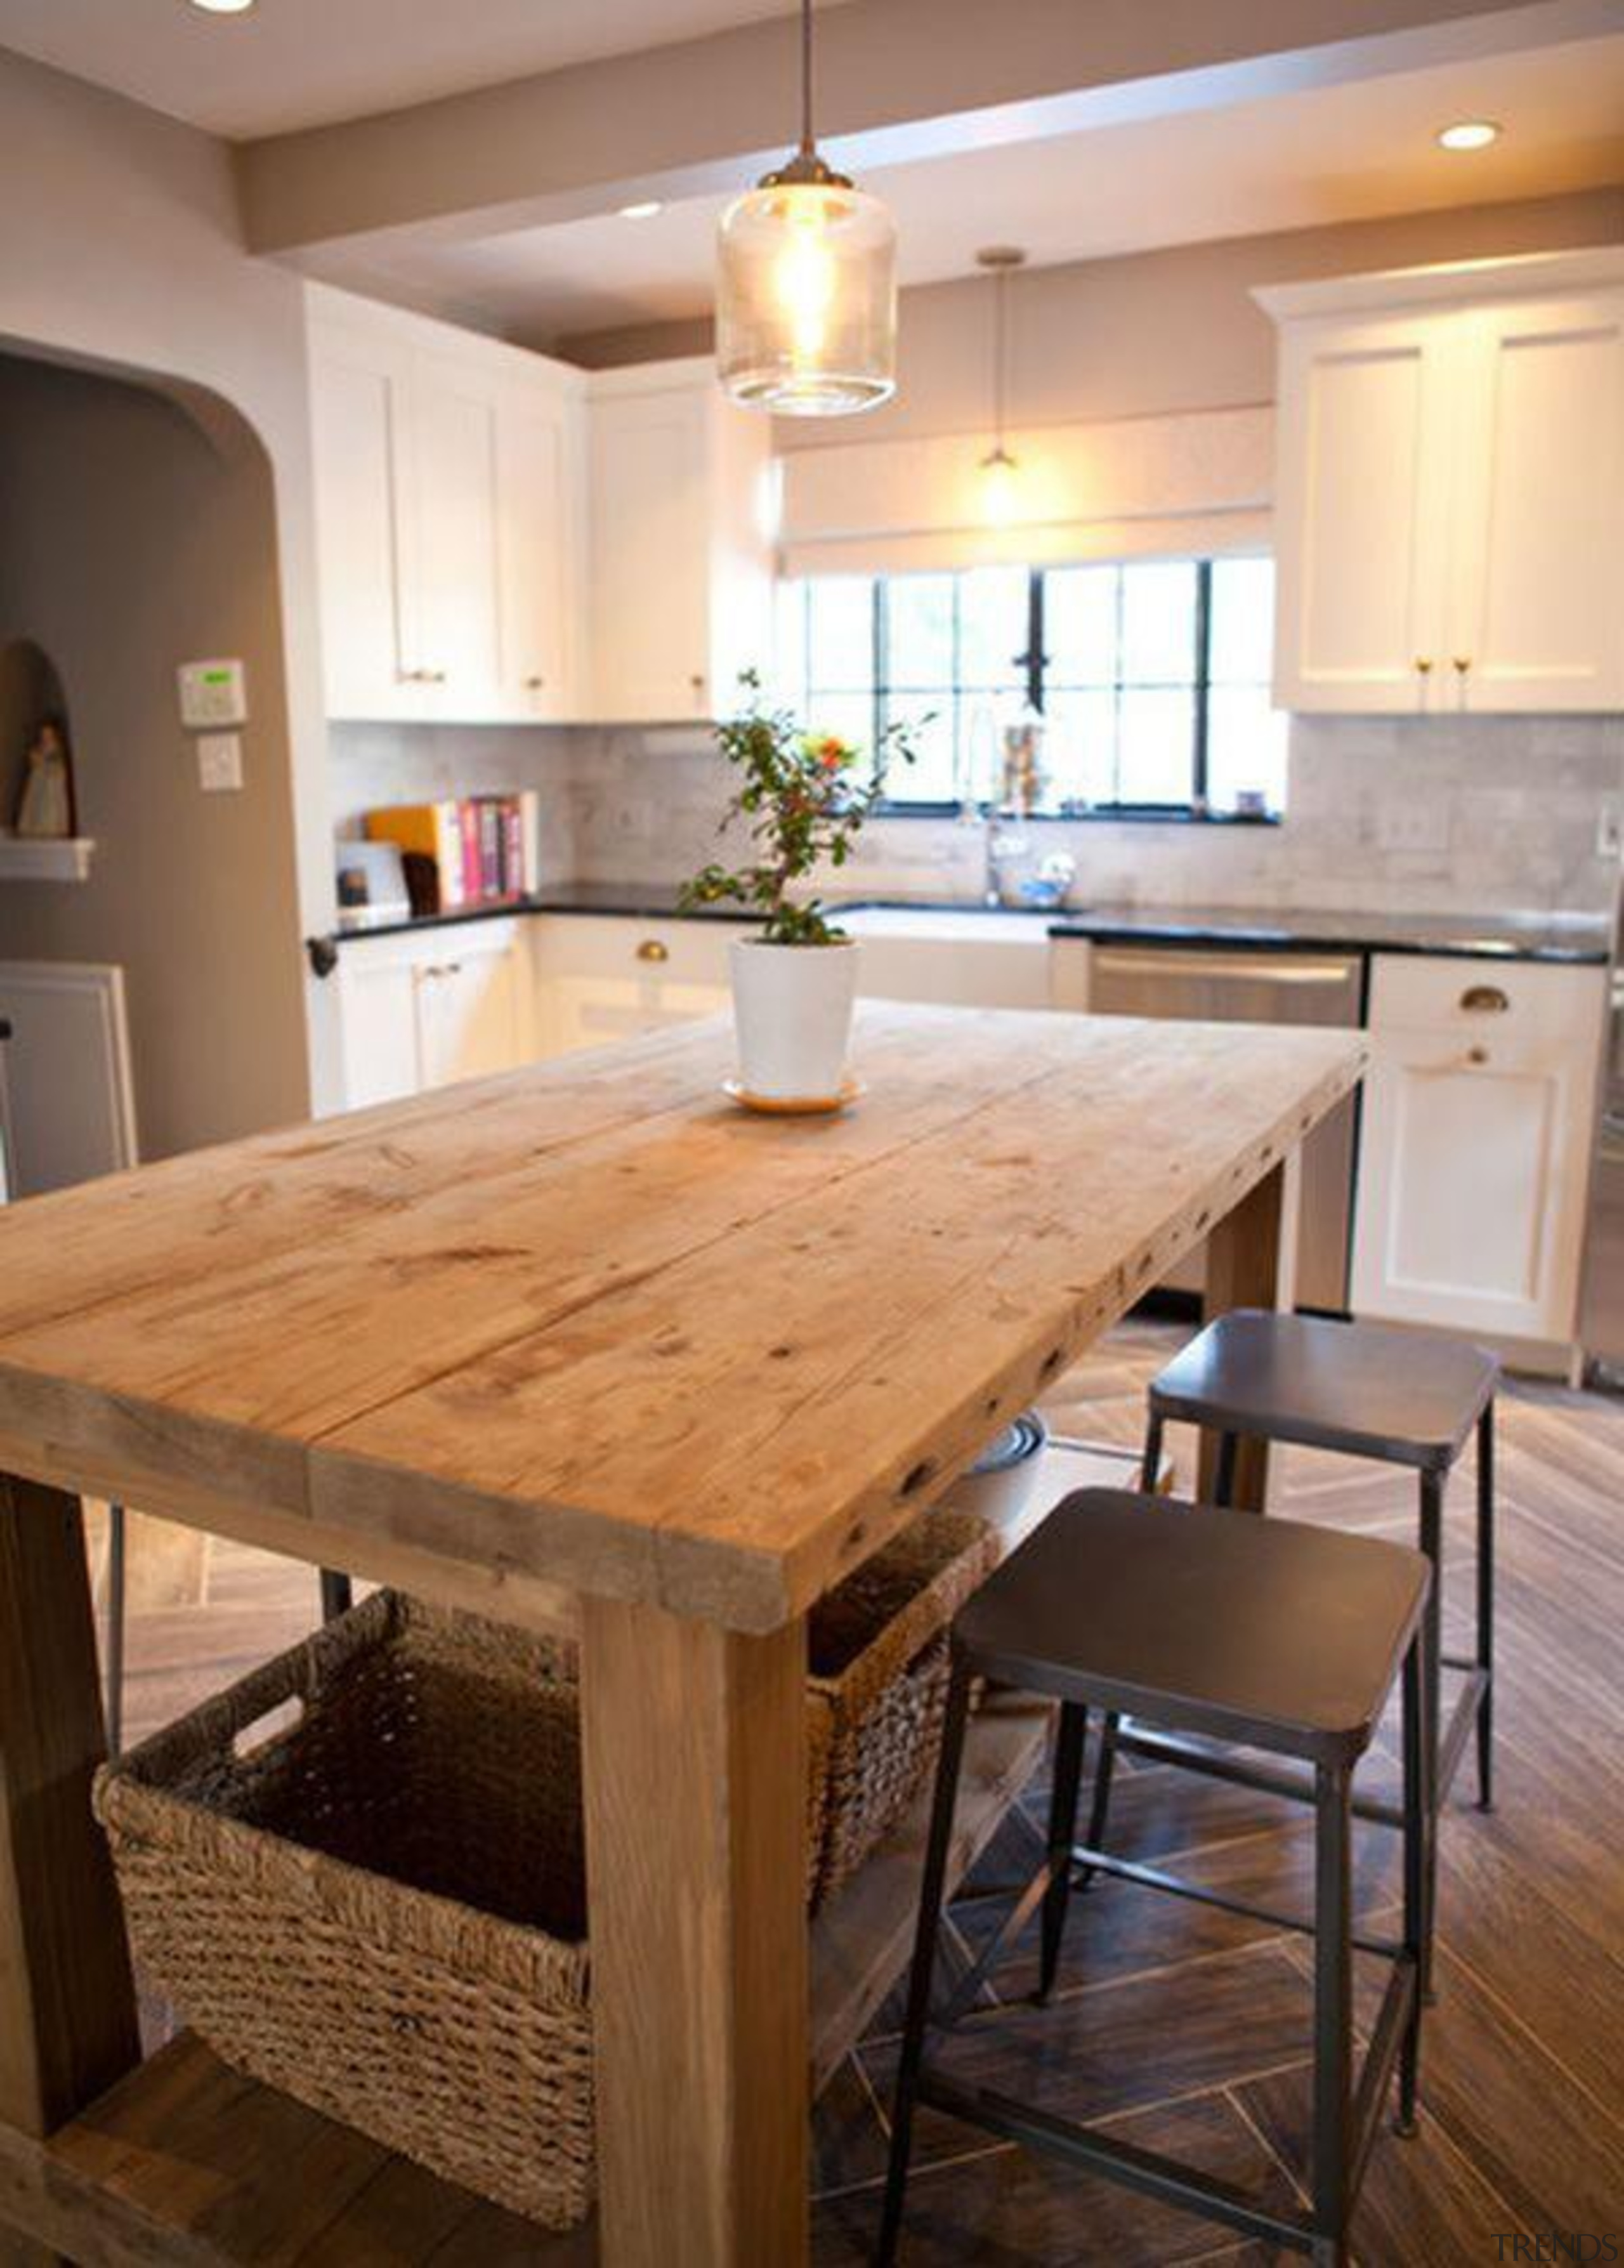 Kitchen Island Start a myTrends ProjectCreate an ideas cabinetry, countertop, cuisine classique, dining room, floor, flooring, furniture, hardwood, interior design, kitchen, laminate flooring, room, table, wood, wood flooring, wood stain, brown, gray